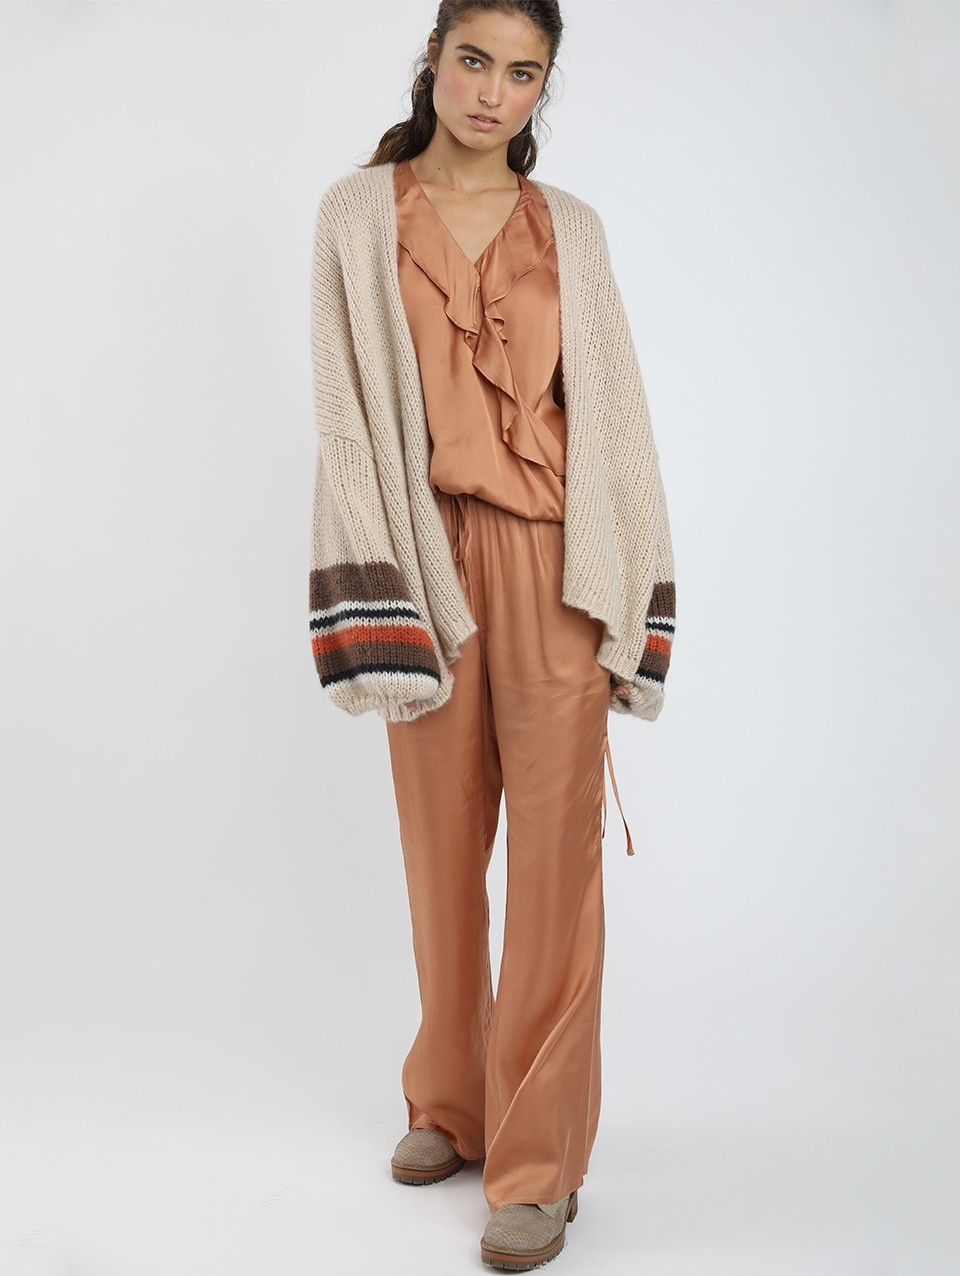 Ema Striped Puffy Oversize Cardigan-0-Natural-0